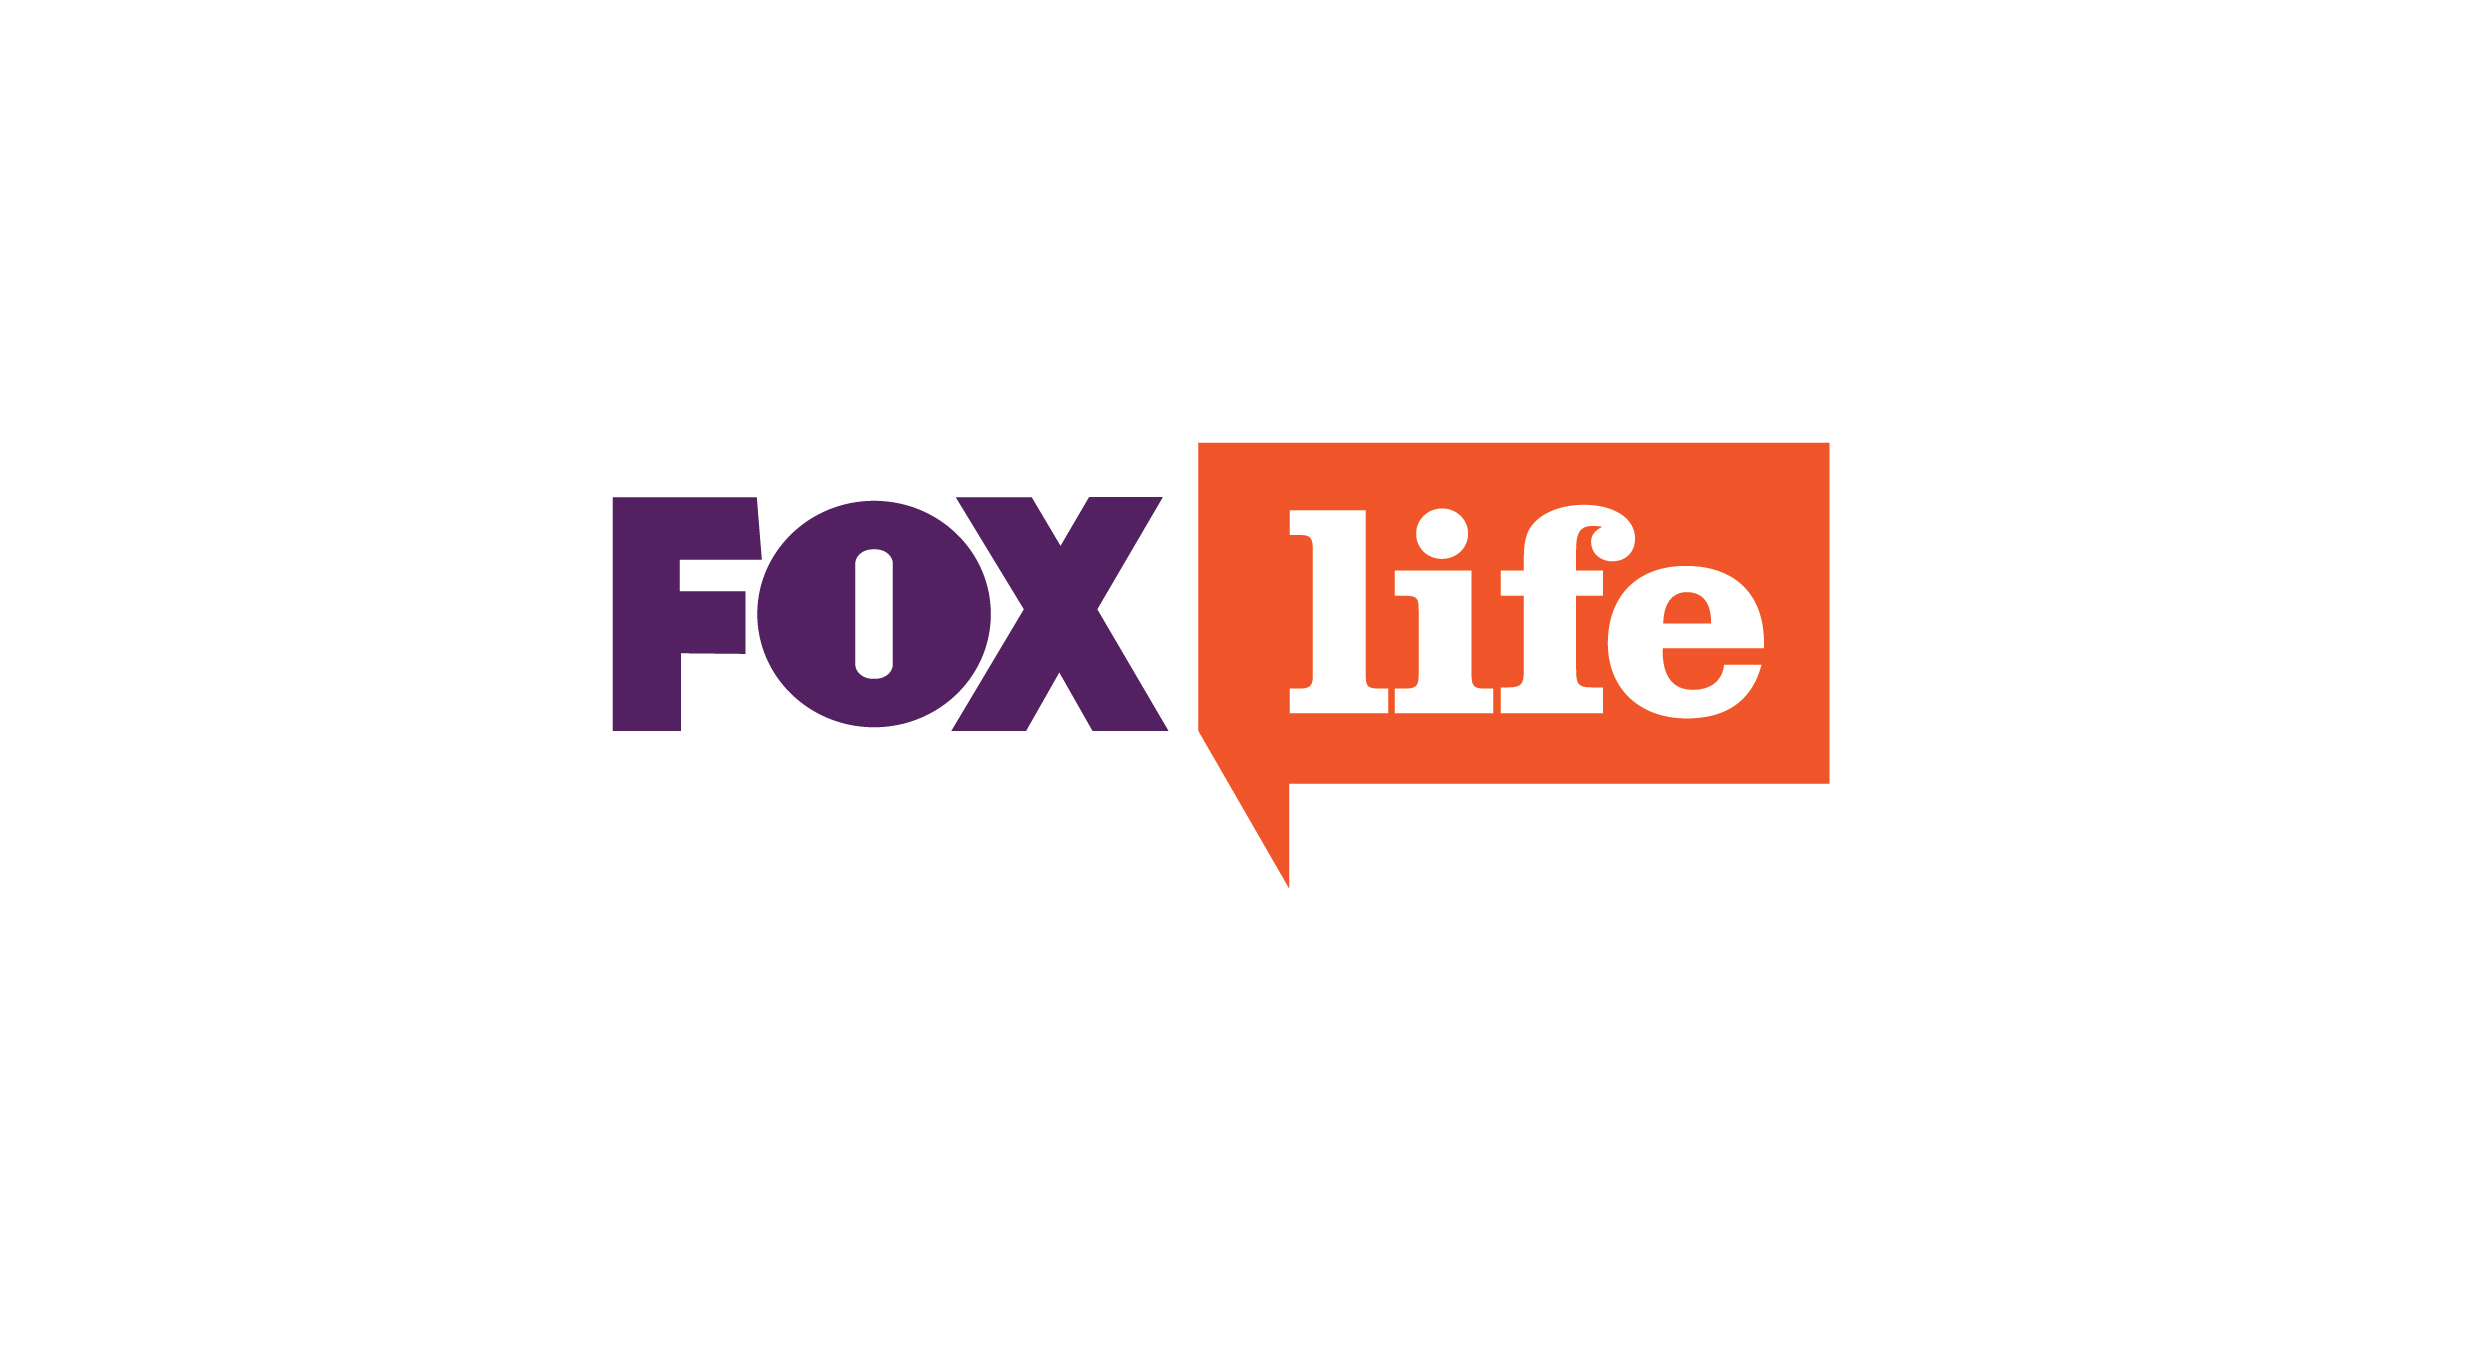 FOX Life Logo Wallpaper